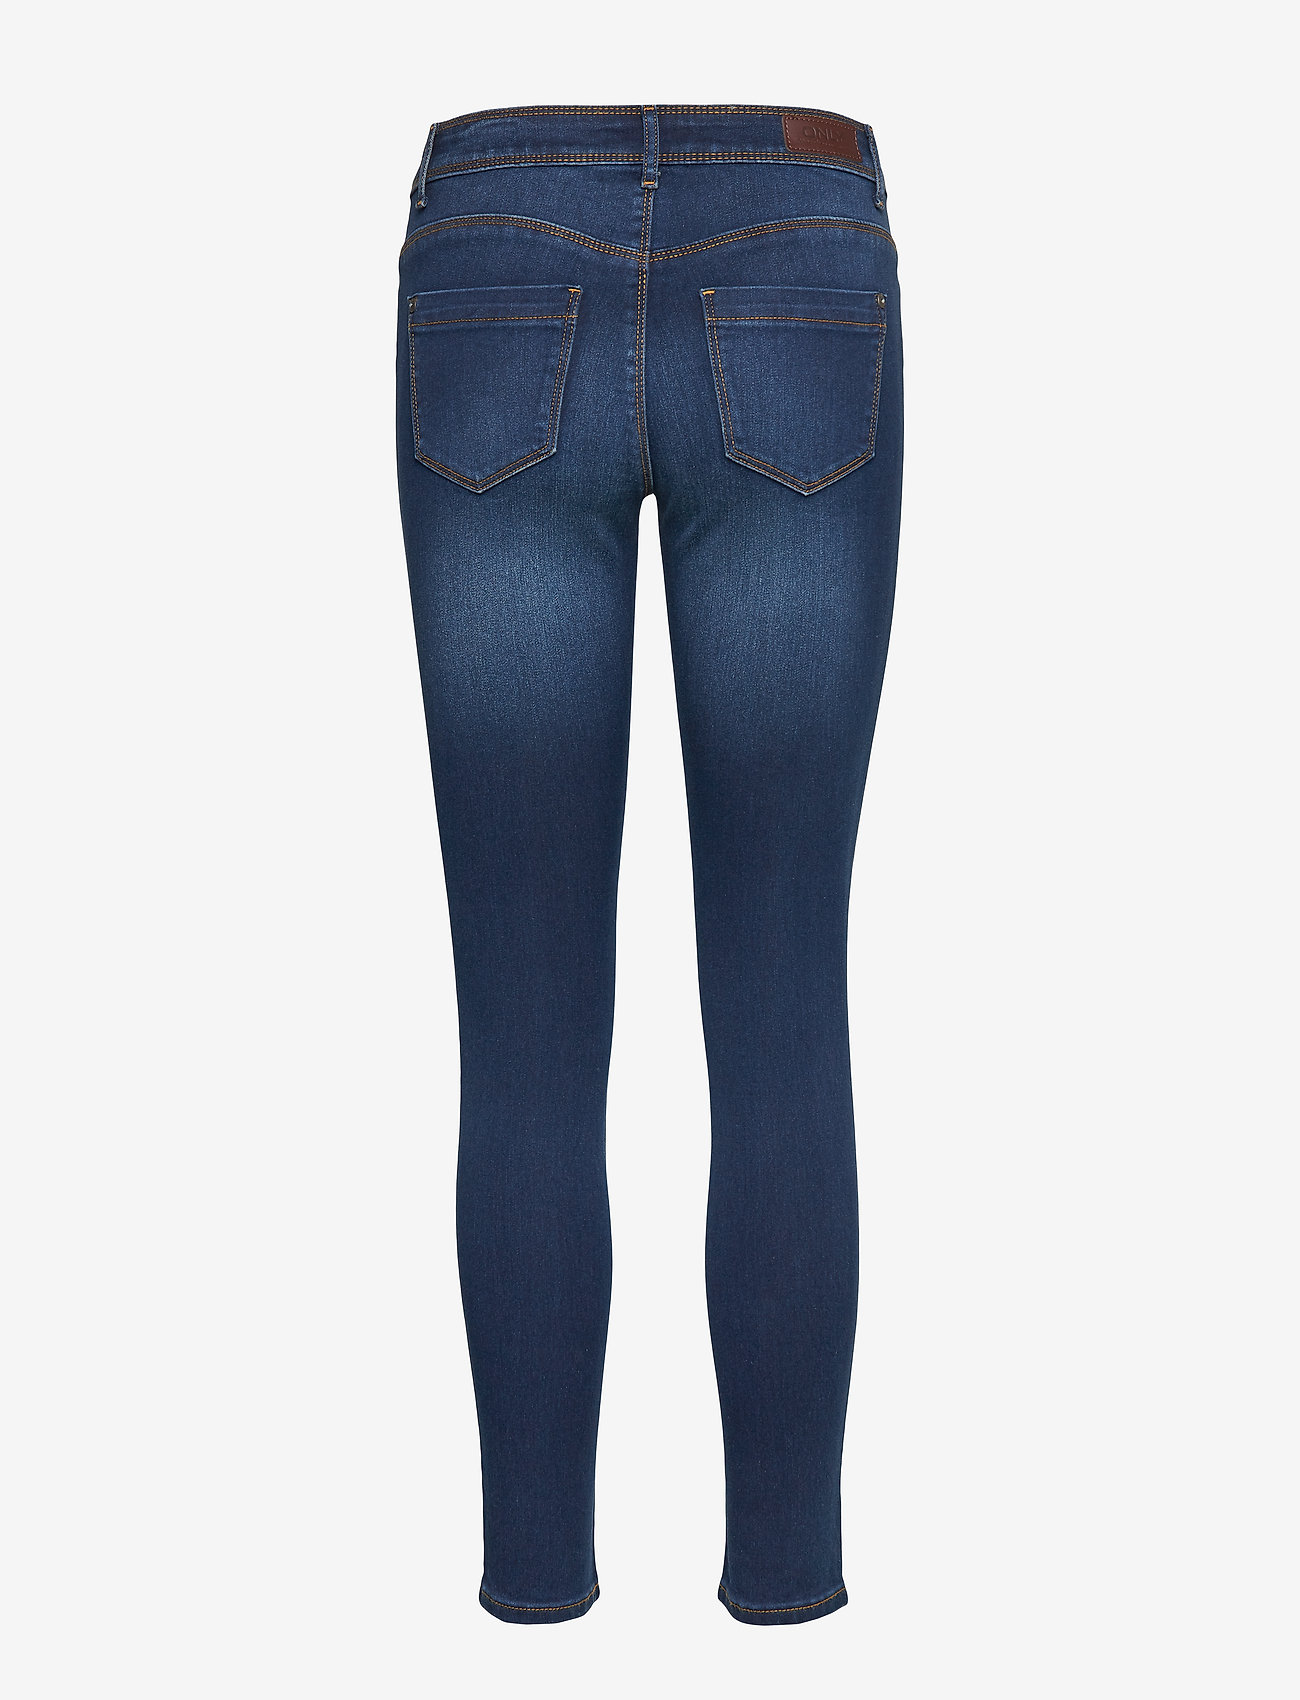 ONLY - ONLULTIMATE KING REG JEANS CRY200 NOOS - skinny jeans - dark blue denim